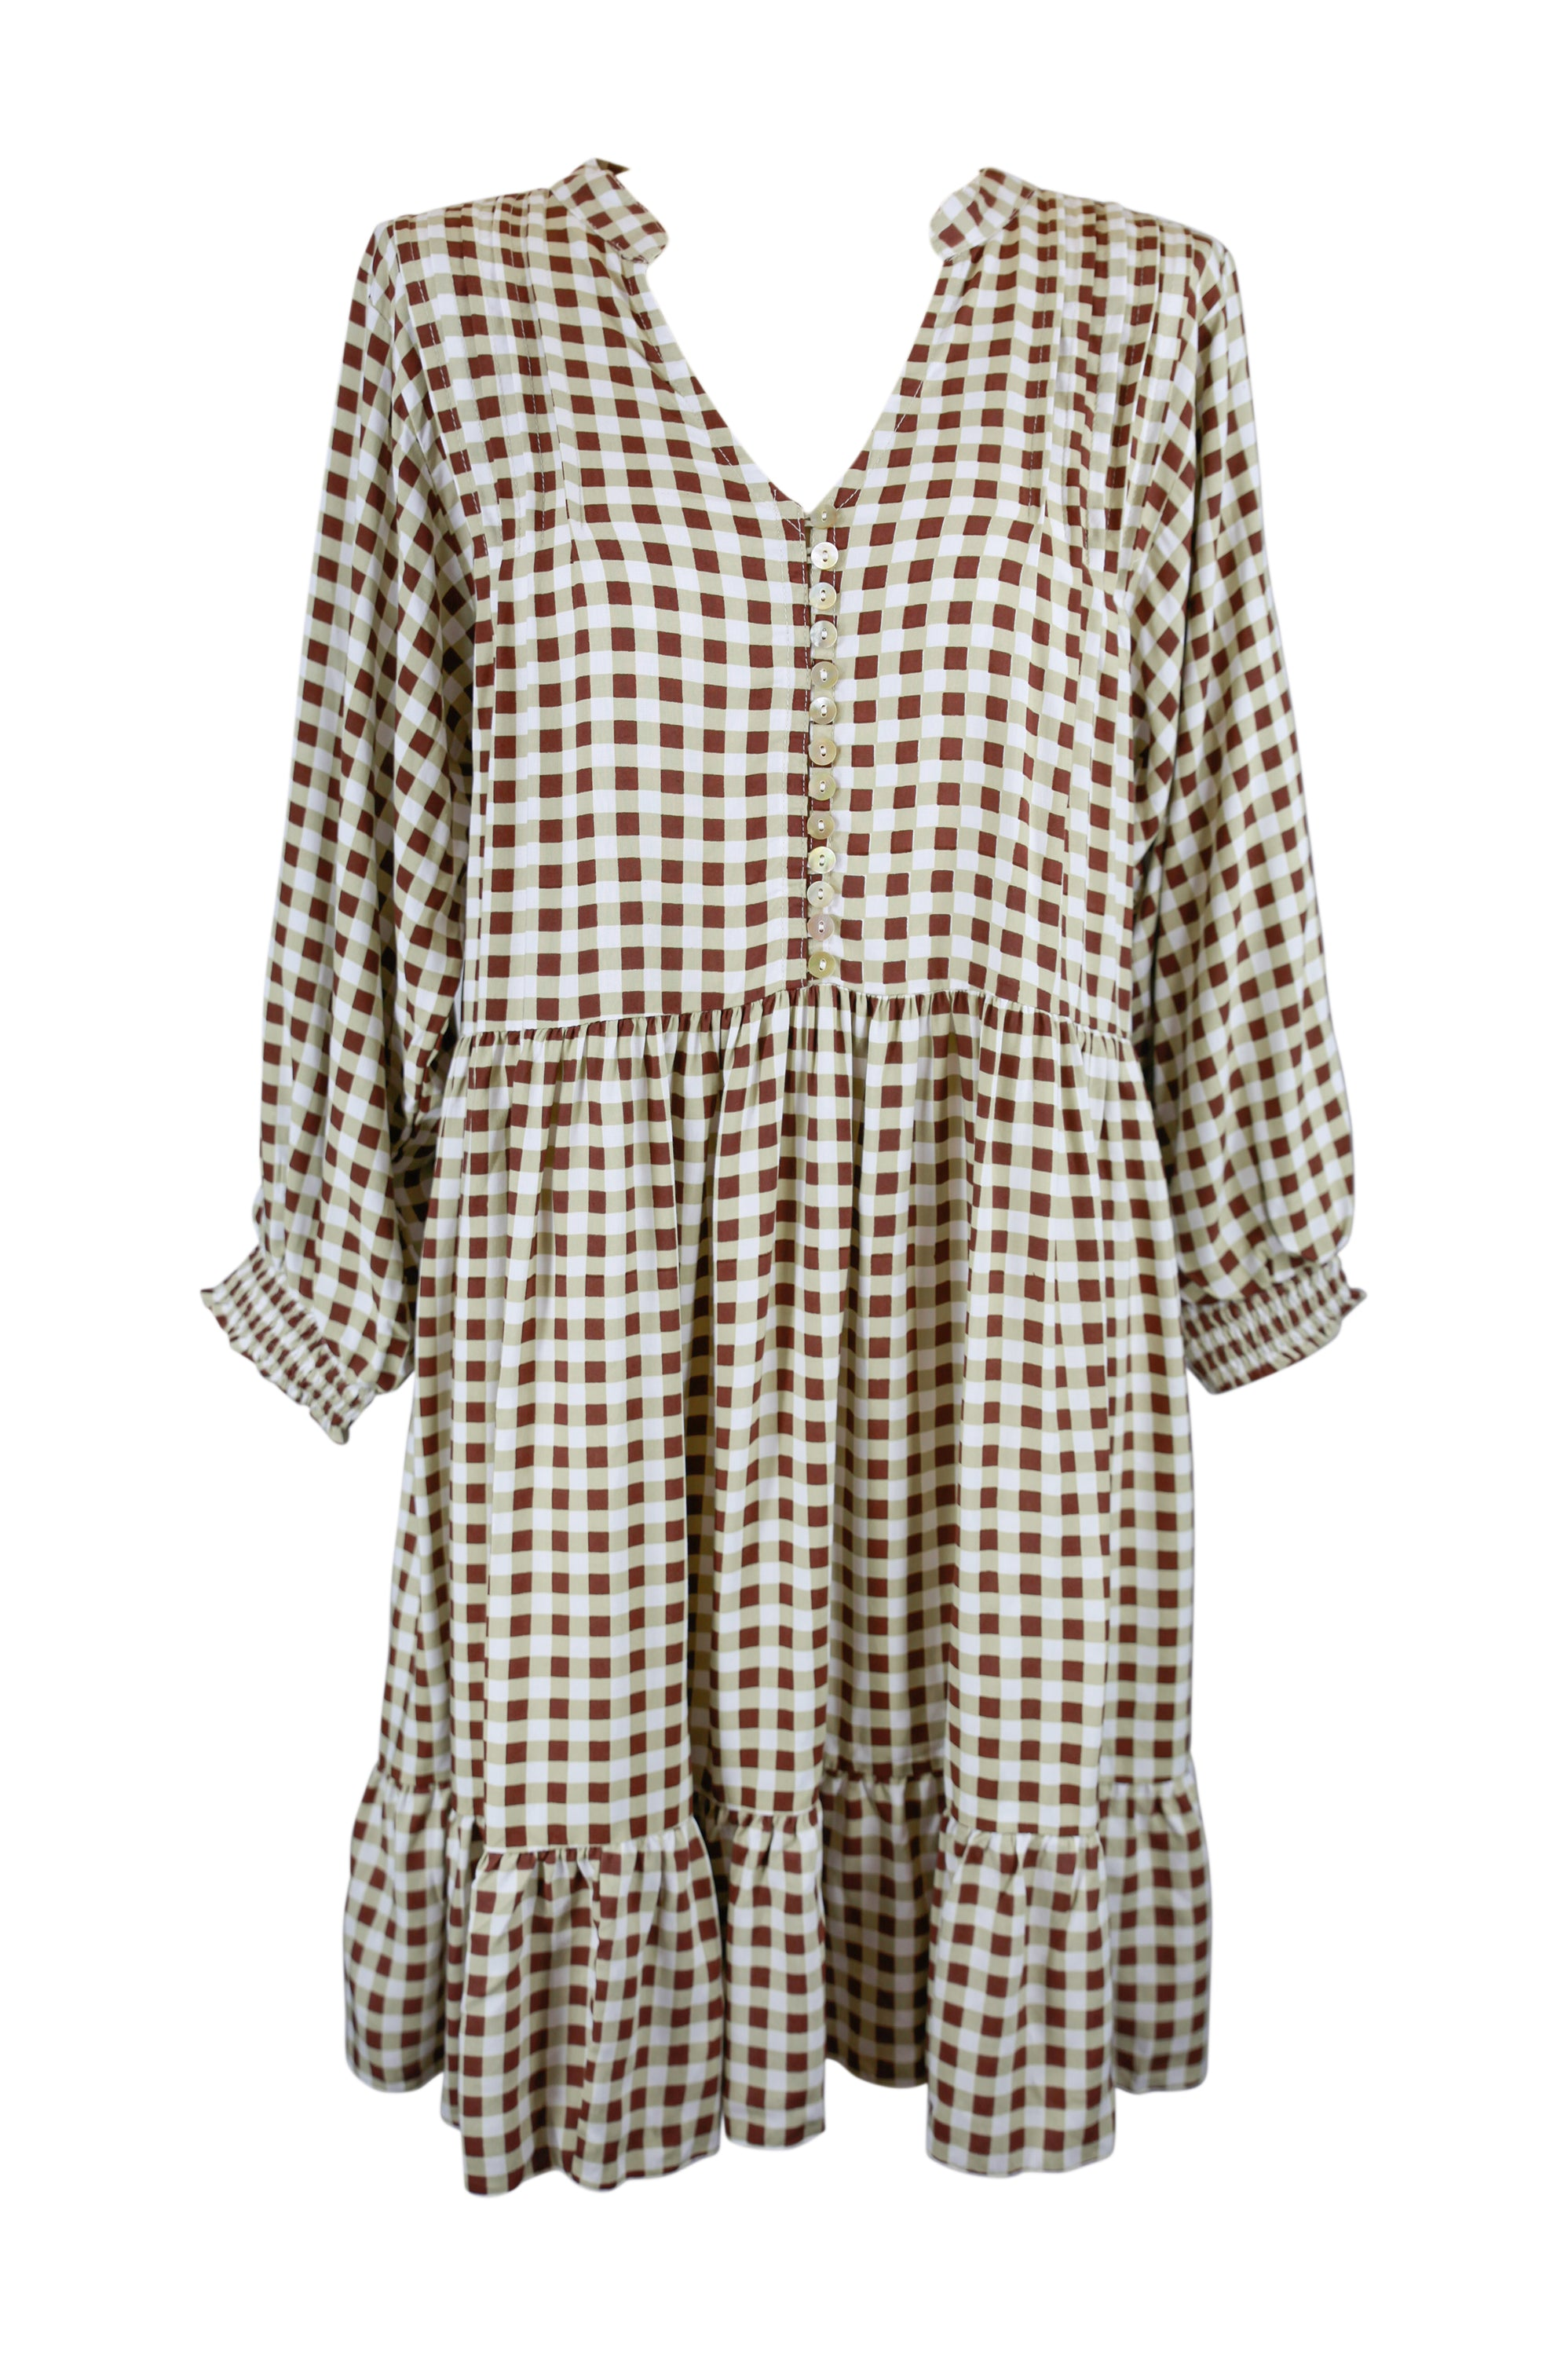 New Juliette Chocolate Gingham **Pre-Order Item** - Saffron Road